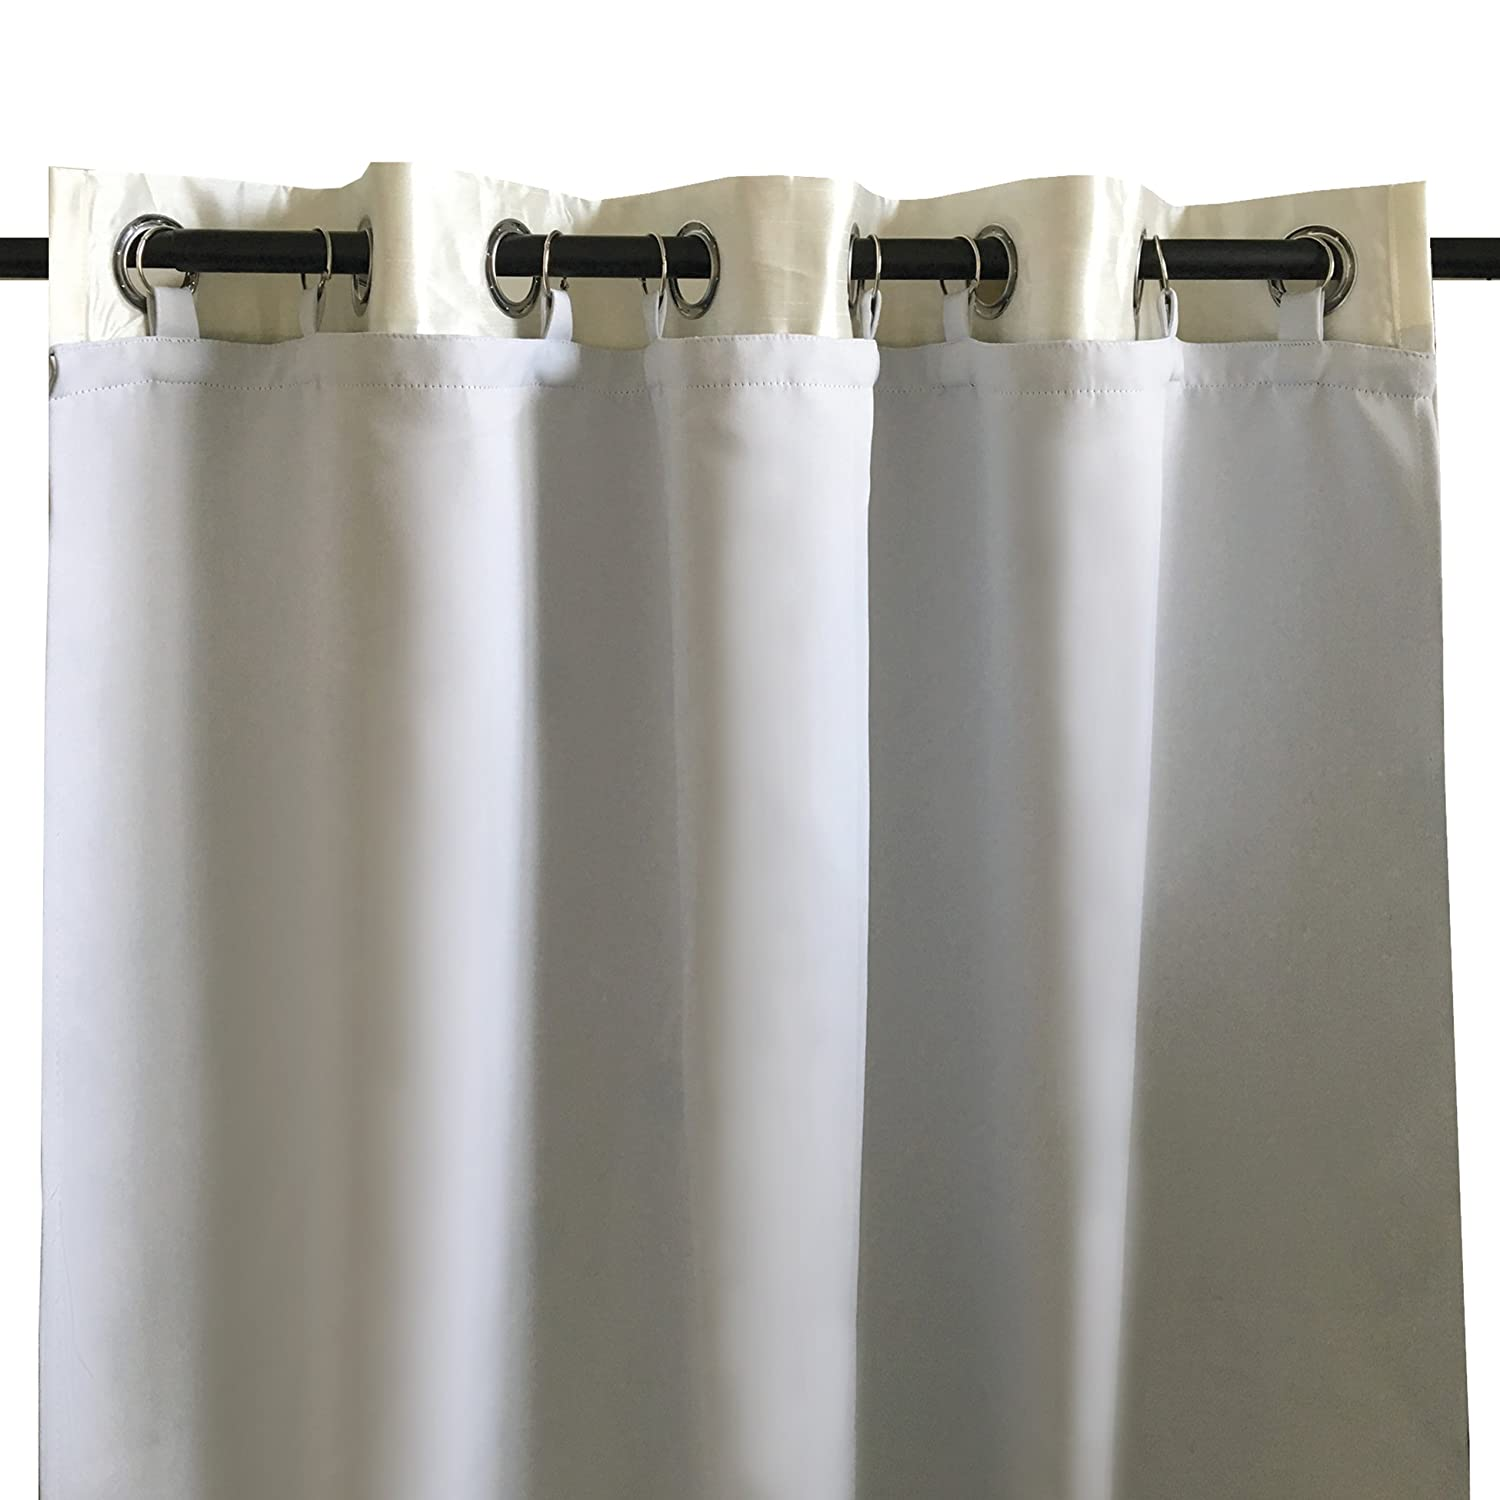 DriftAway Drift Away Thermal Insulated Blackout Curtain Liner for Grommet 63 inch Curtains. Set of 2, Each Liner Size (50x58) Wells International